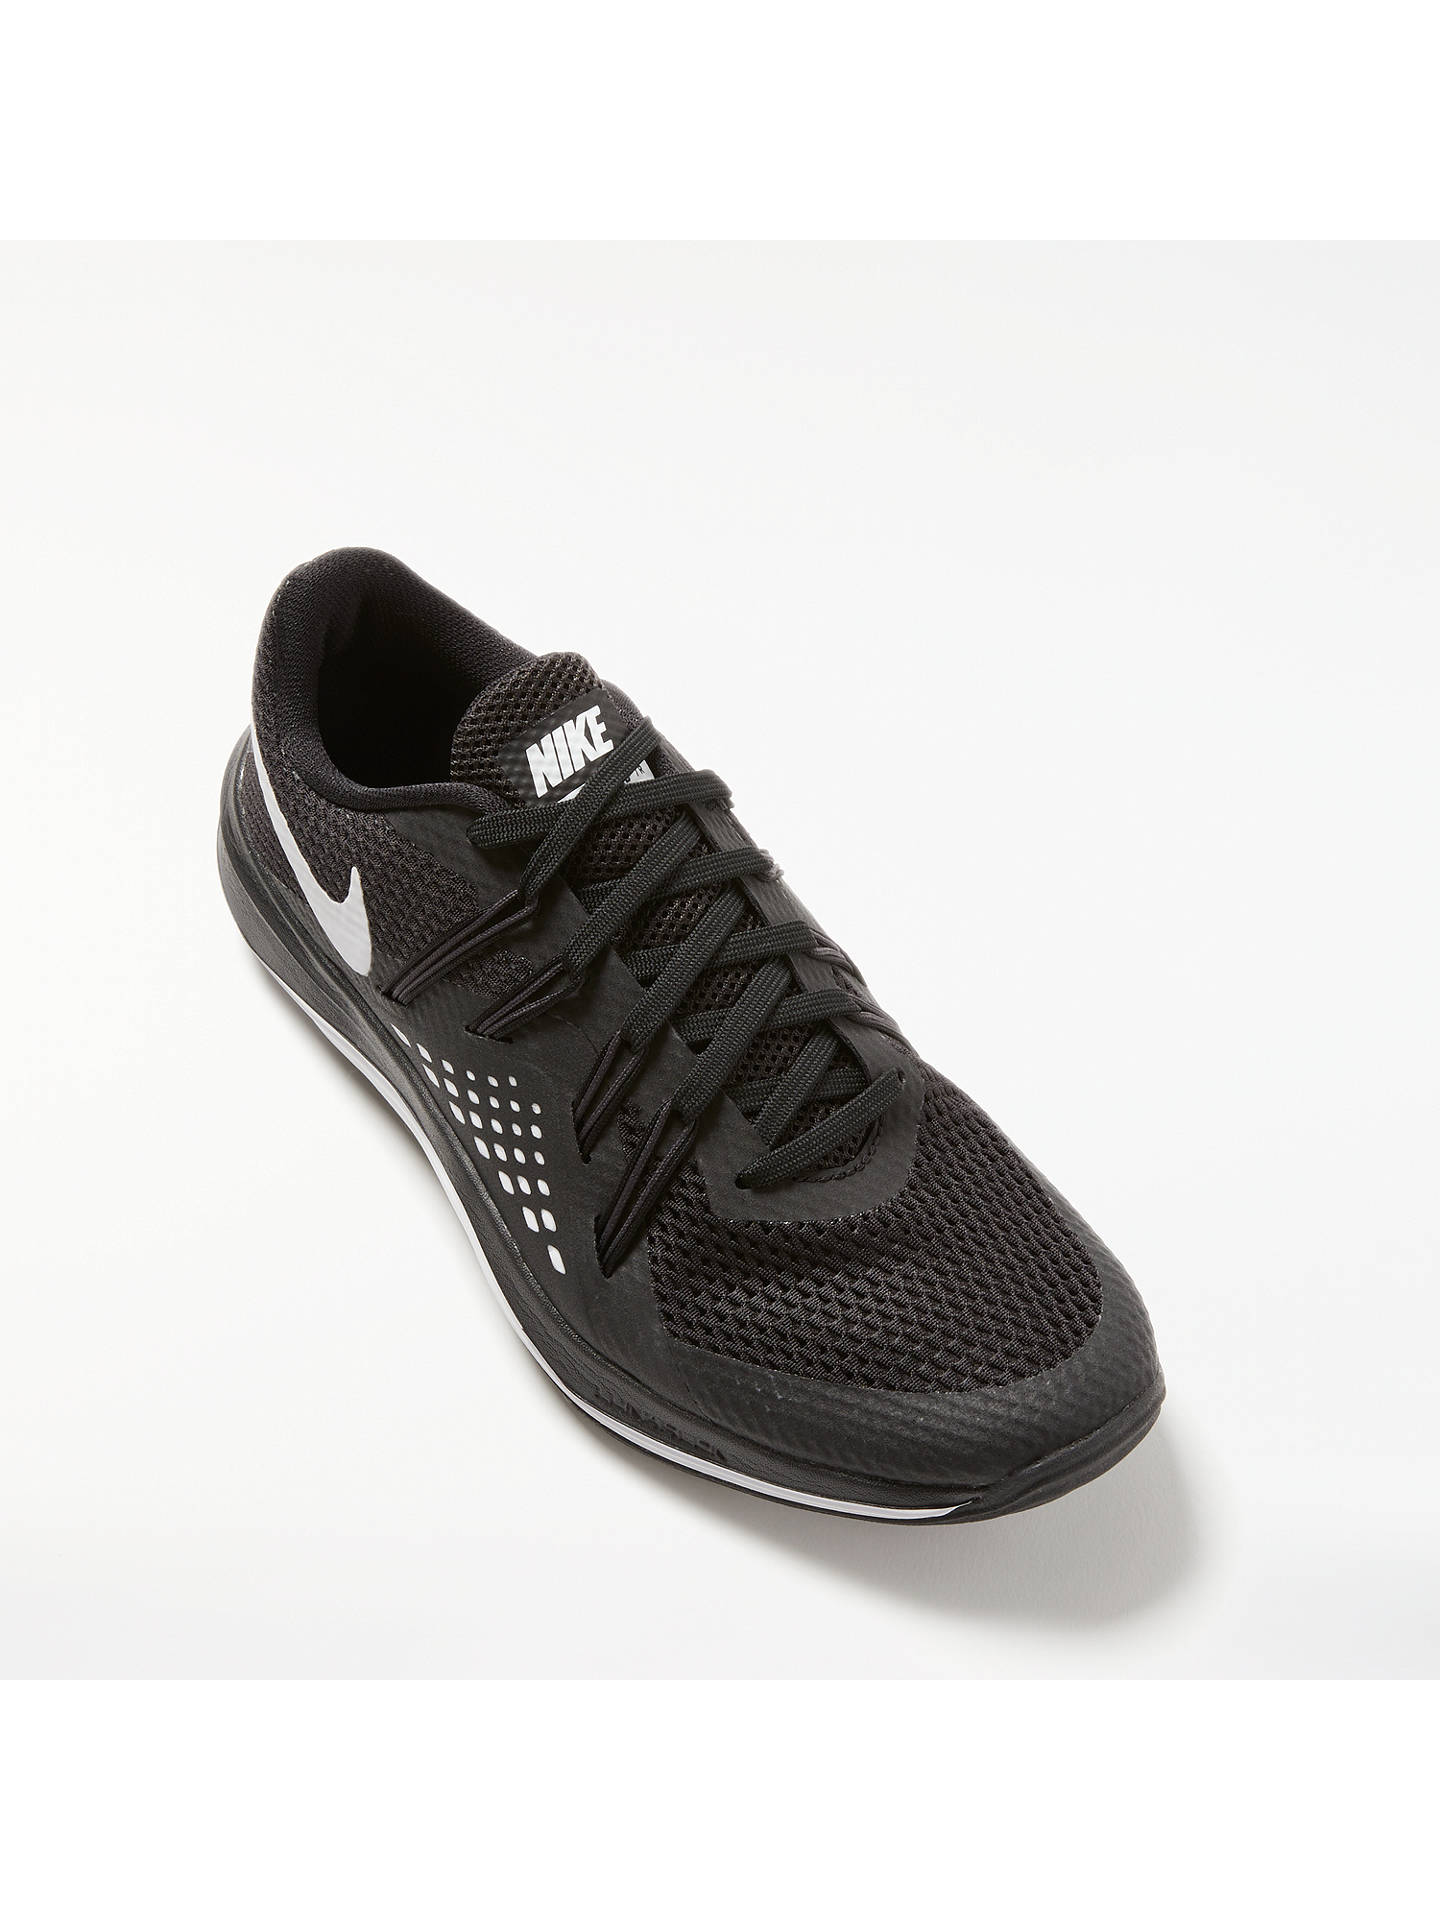 499c32aed4d2 ... Buy Nike Lunar Exceed TR Women s Training Shoes